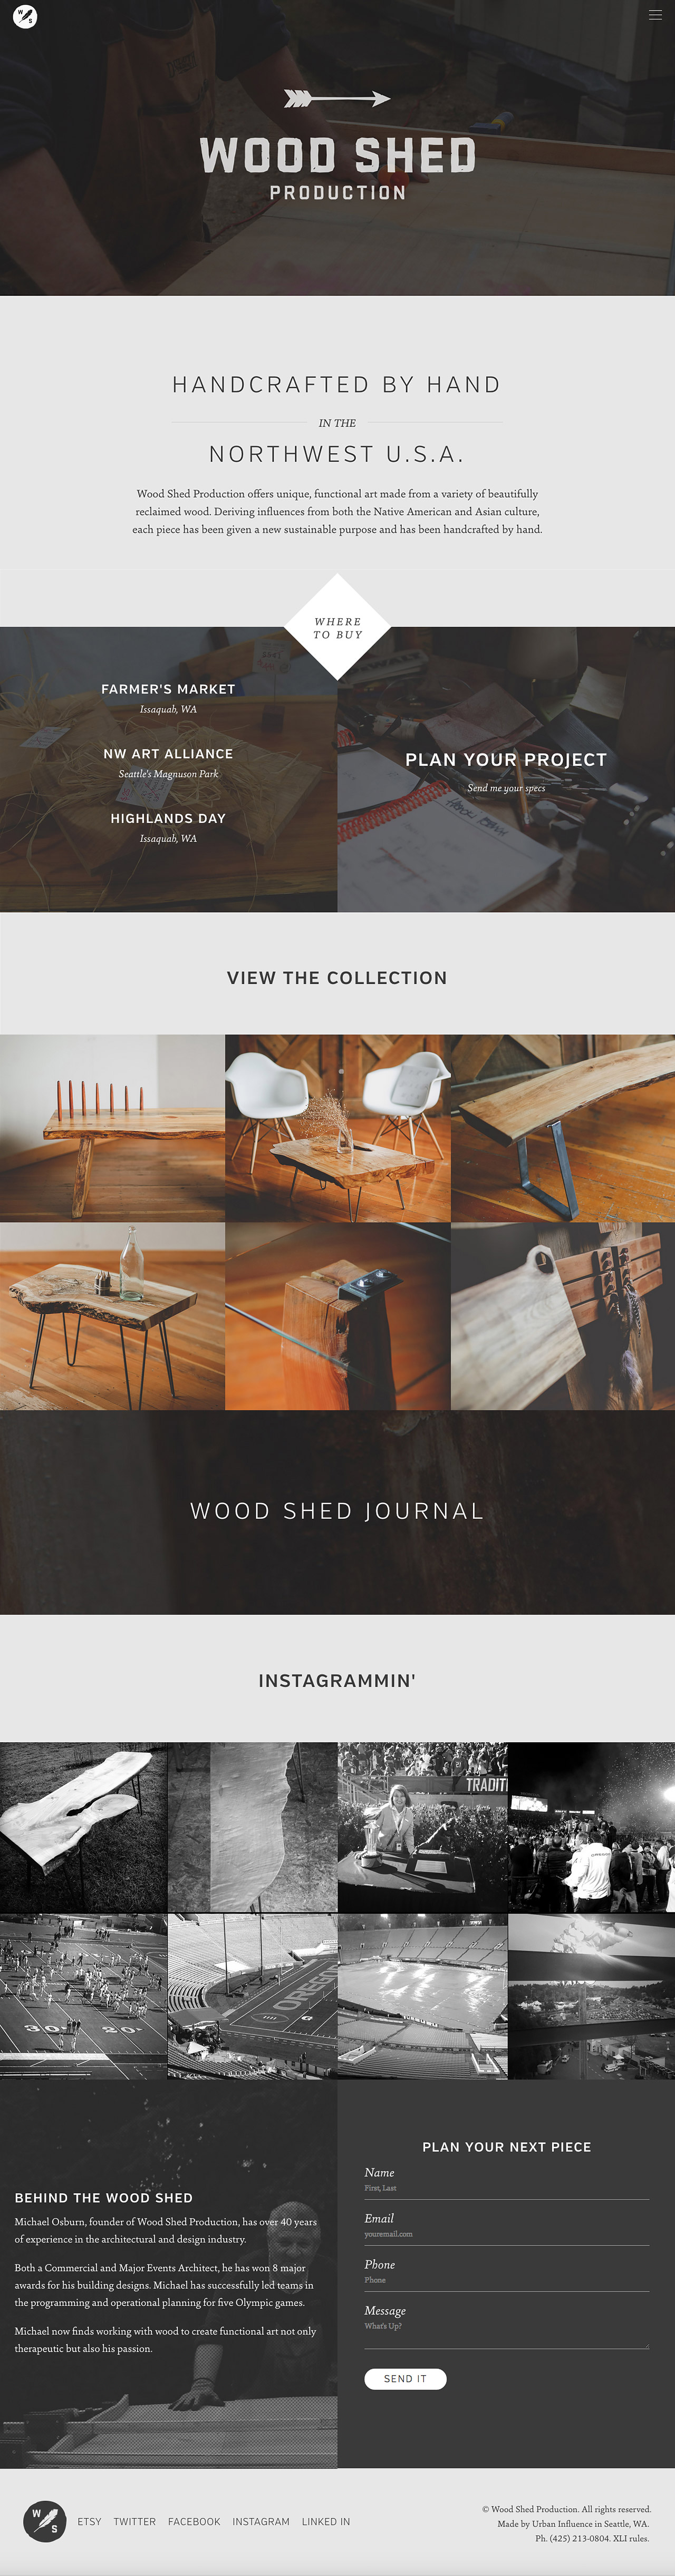 Wood Shed Production Website Screenshot